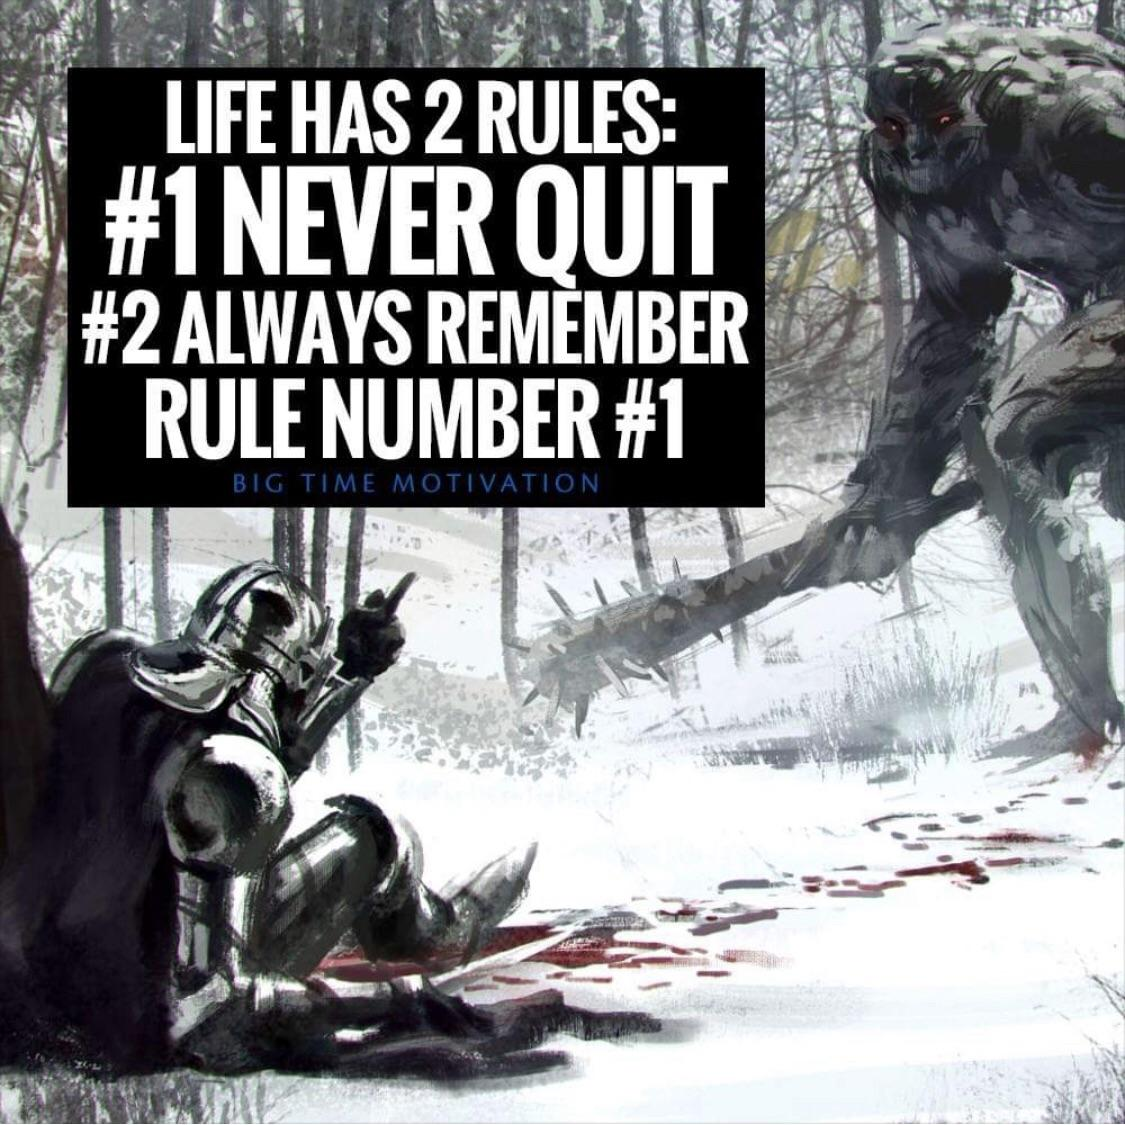 [Image] Life has 2 rules: [OC]